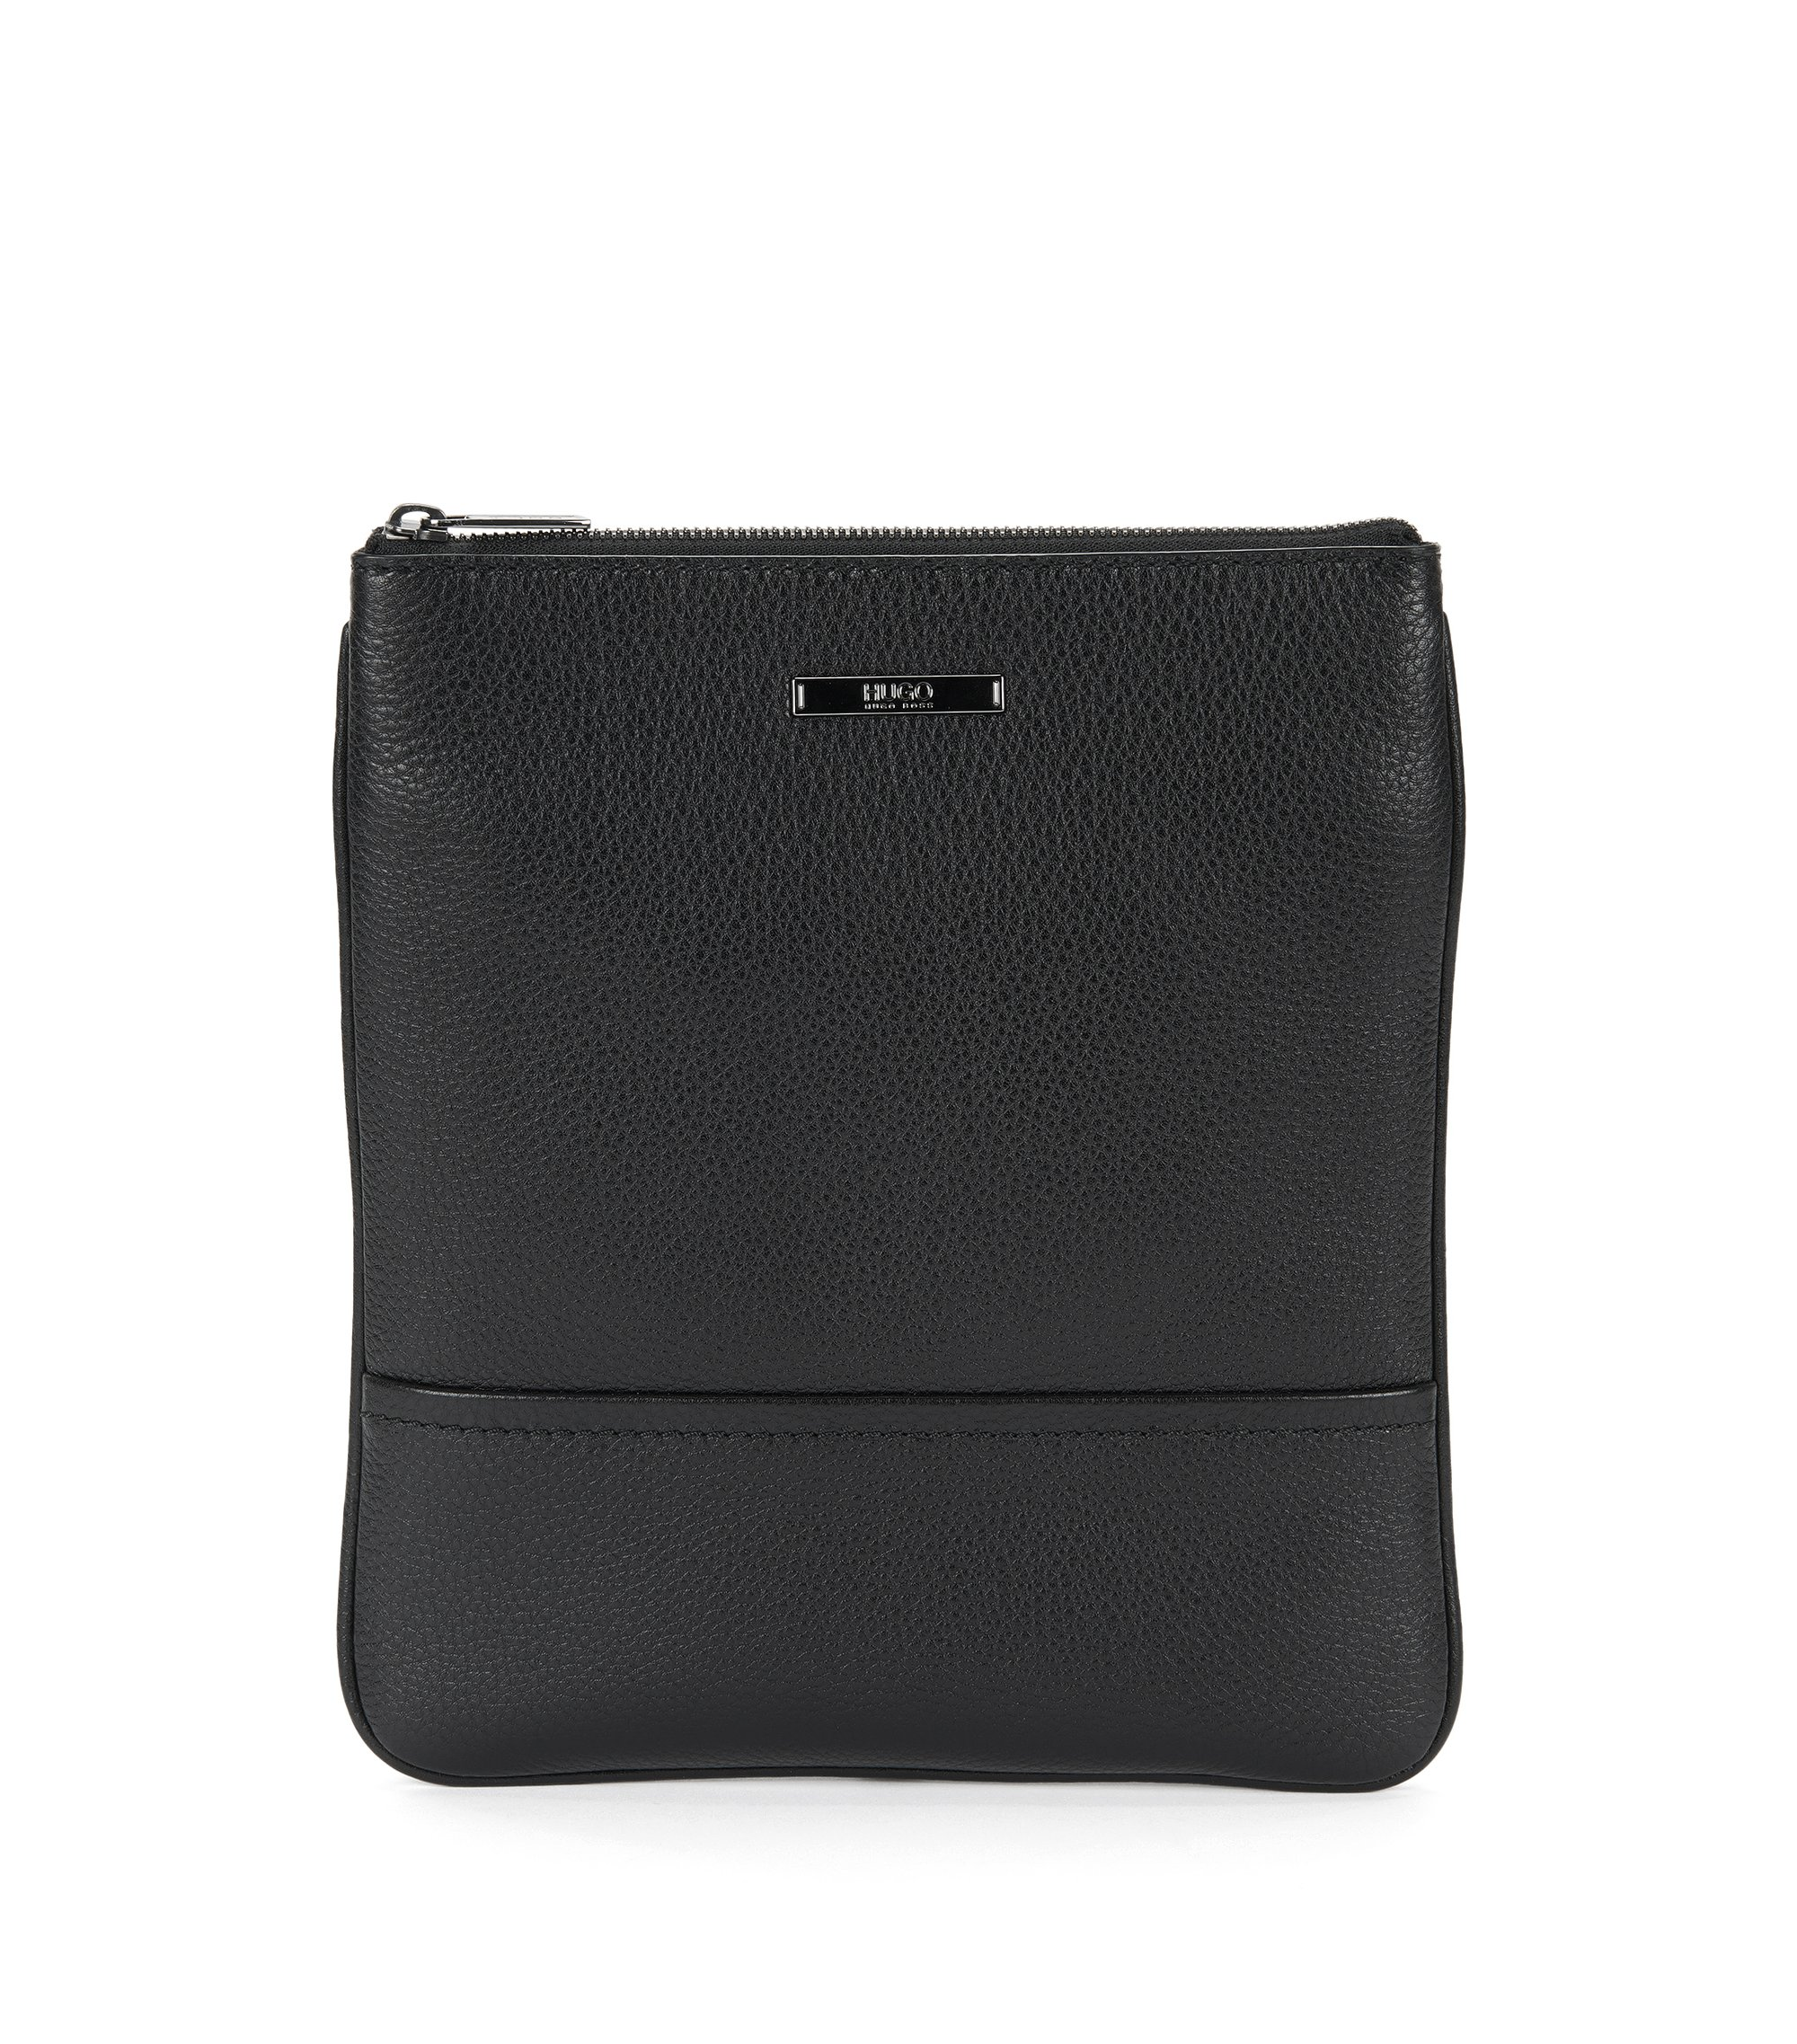 Grained leather pouch with shoulder strap, Black